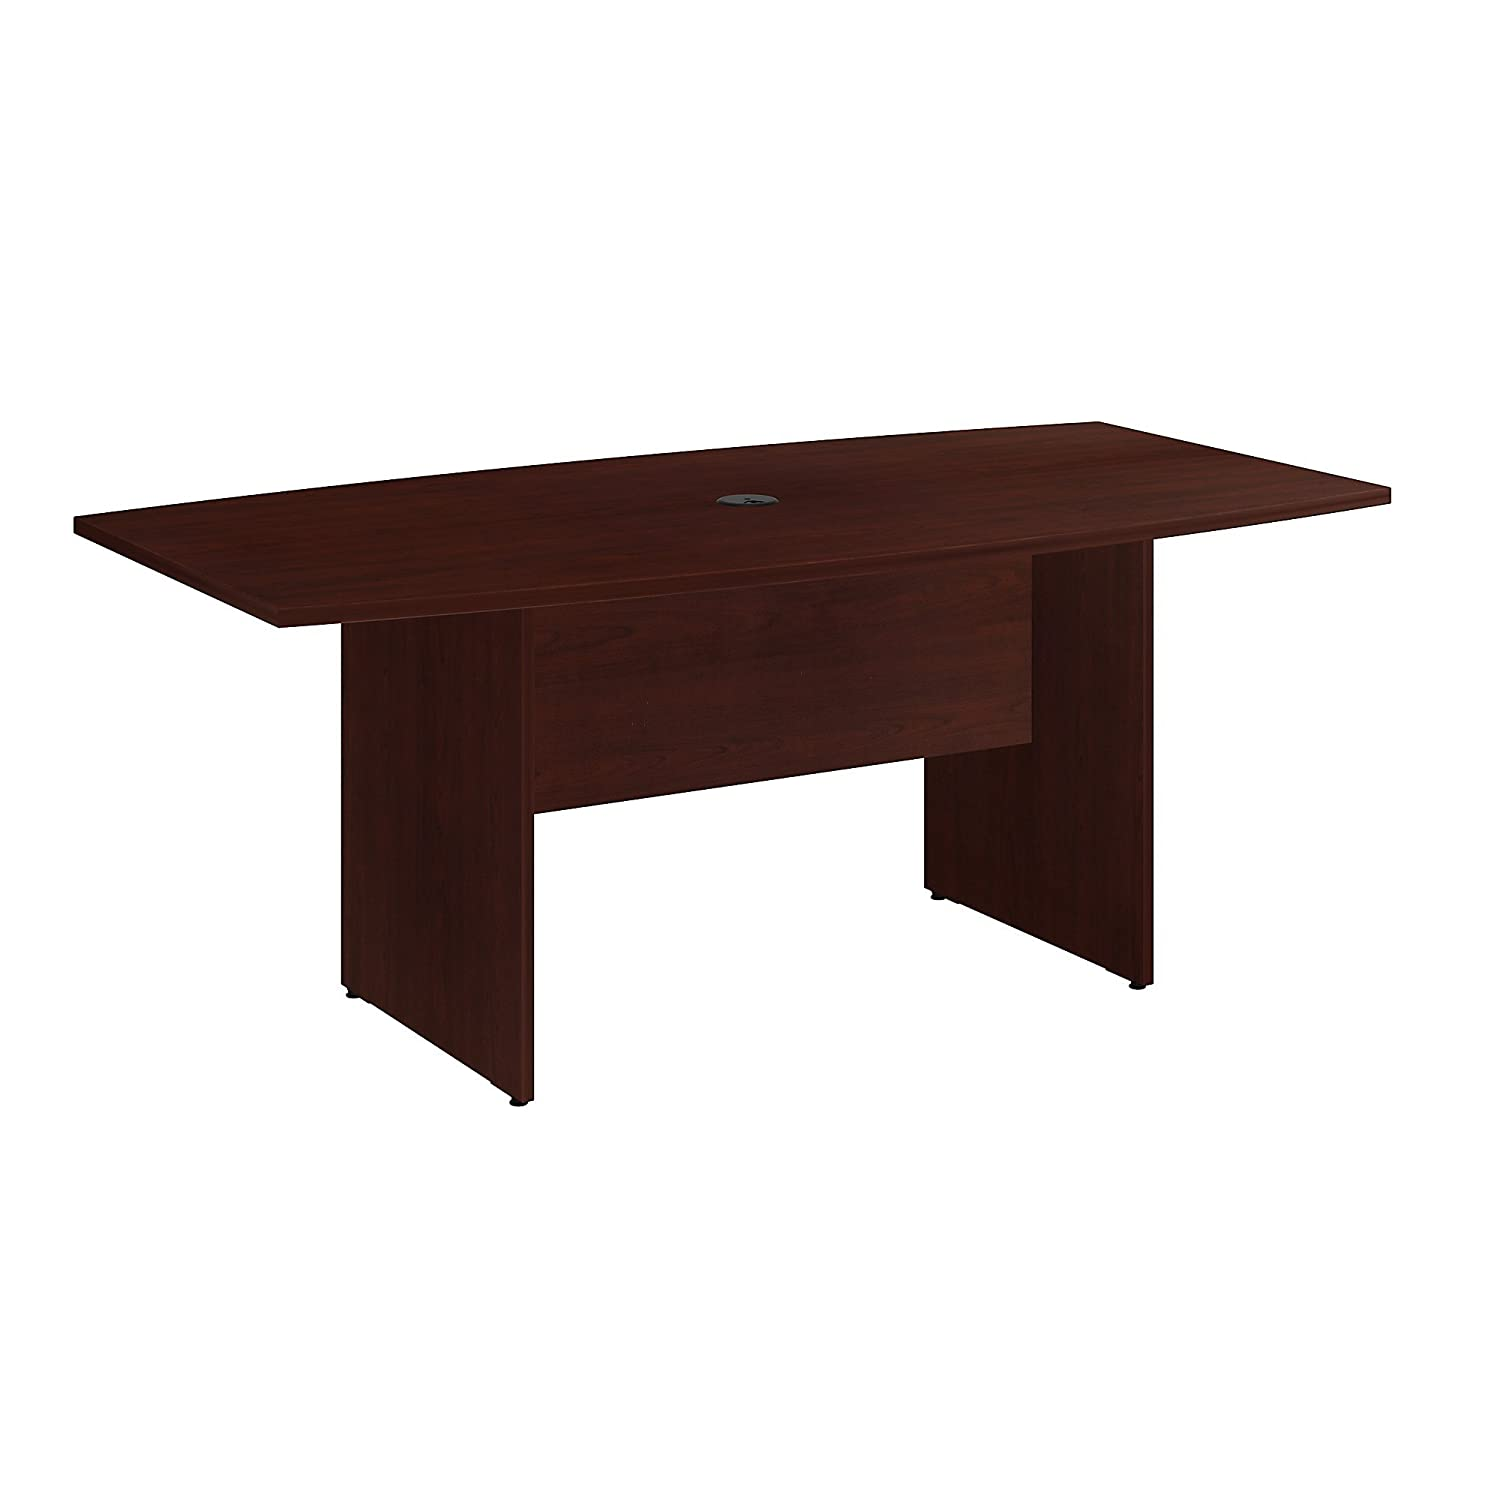 Bush Business Furniture 72W x 36D Boat Shaped Conference Table with Wood Base in Natural Maple